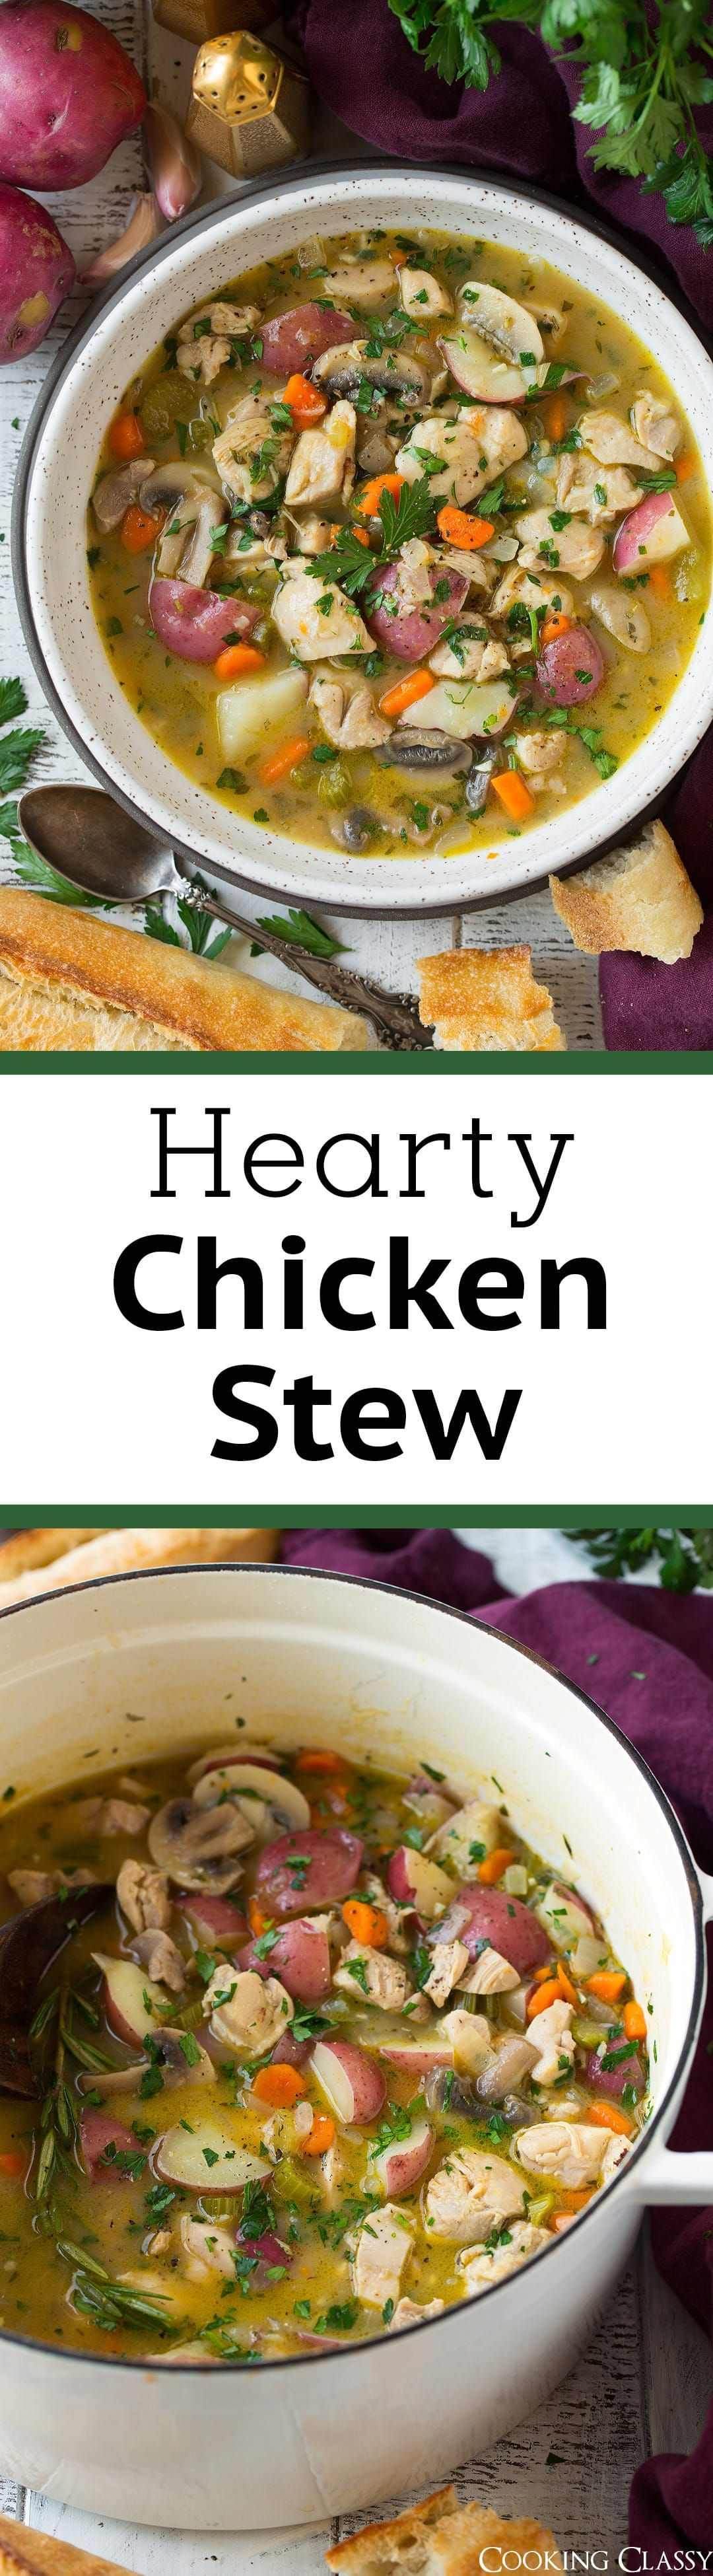 Stew - This homemade Chicken Stew is just what you need to cozy up to after a long day! It calls for simple ingredients that together create a delicious final product. This is a hearty recipe everyone will enjoy! via @cookingclassy